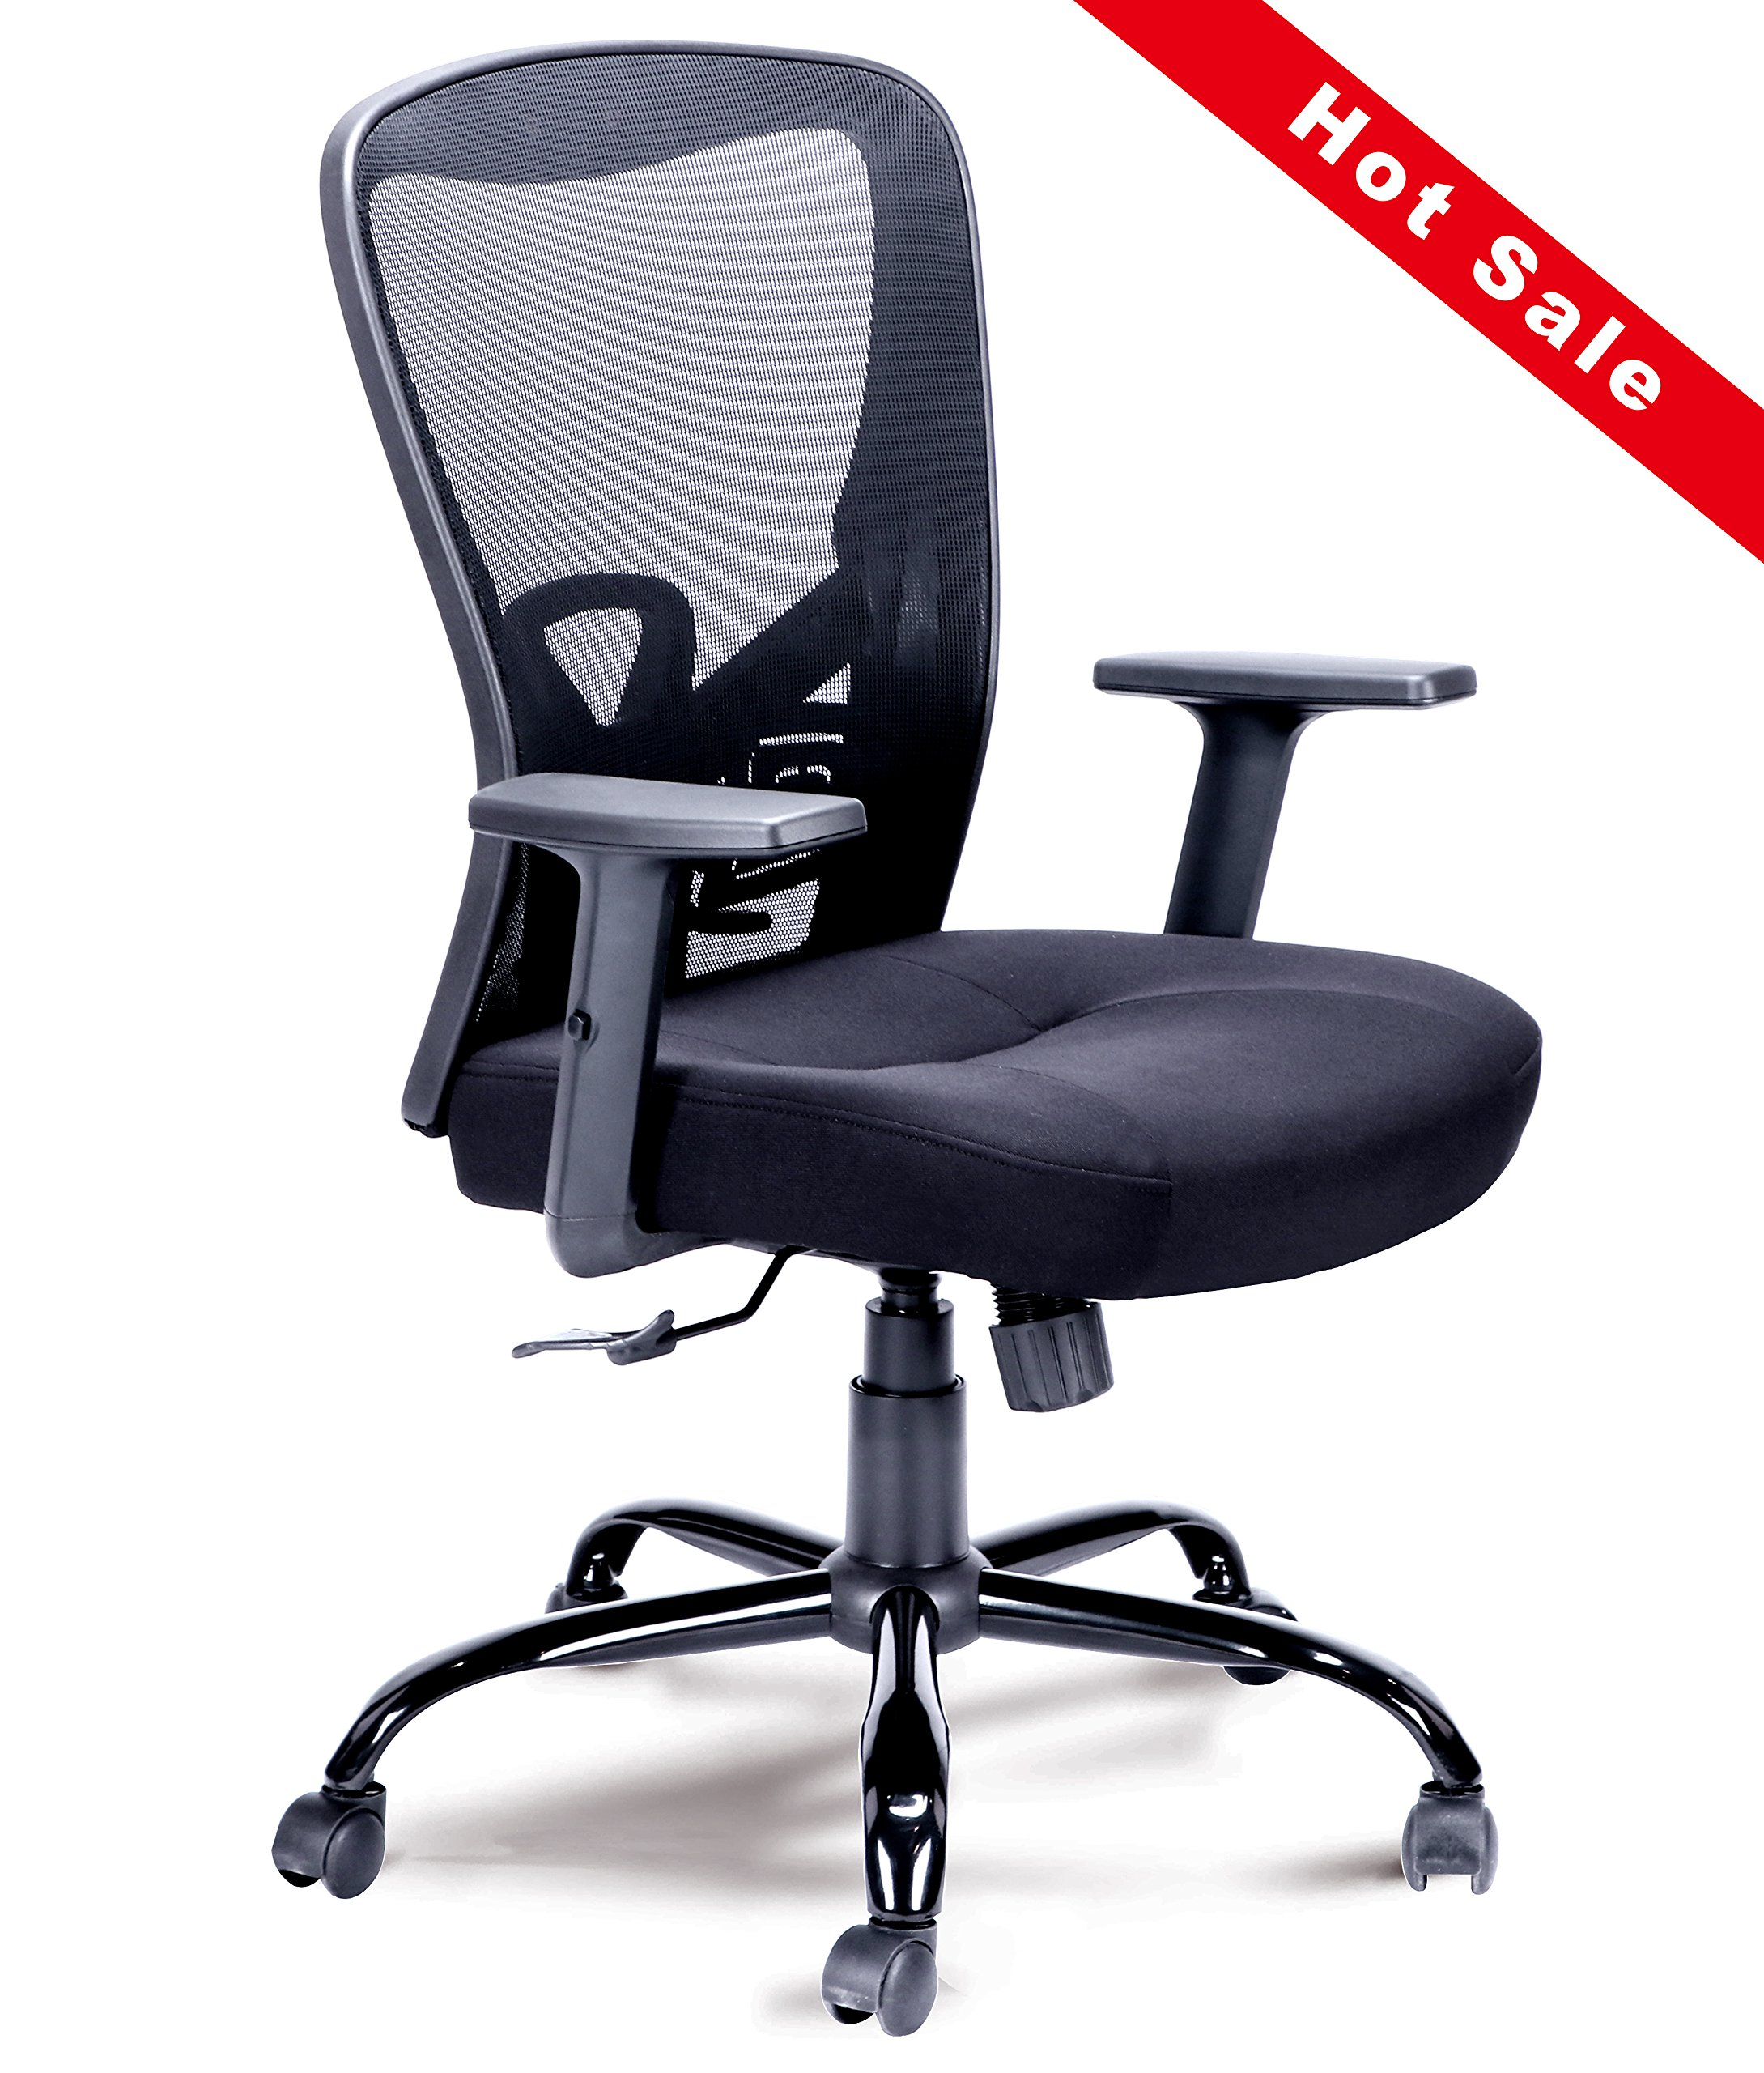 Mid-Back Mesh Chair Swivel Office Computer Chair with Adjustable Armrests Comfortable Seating(Black)